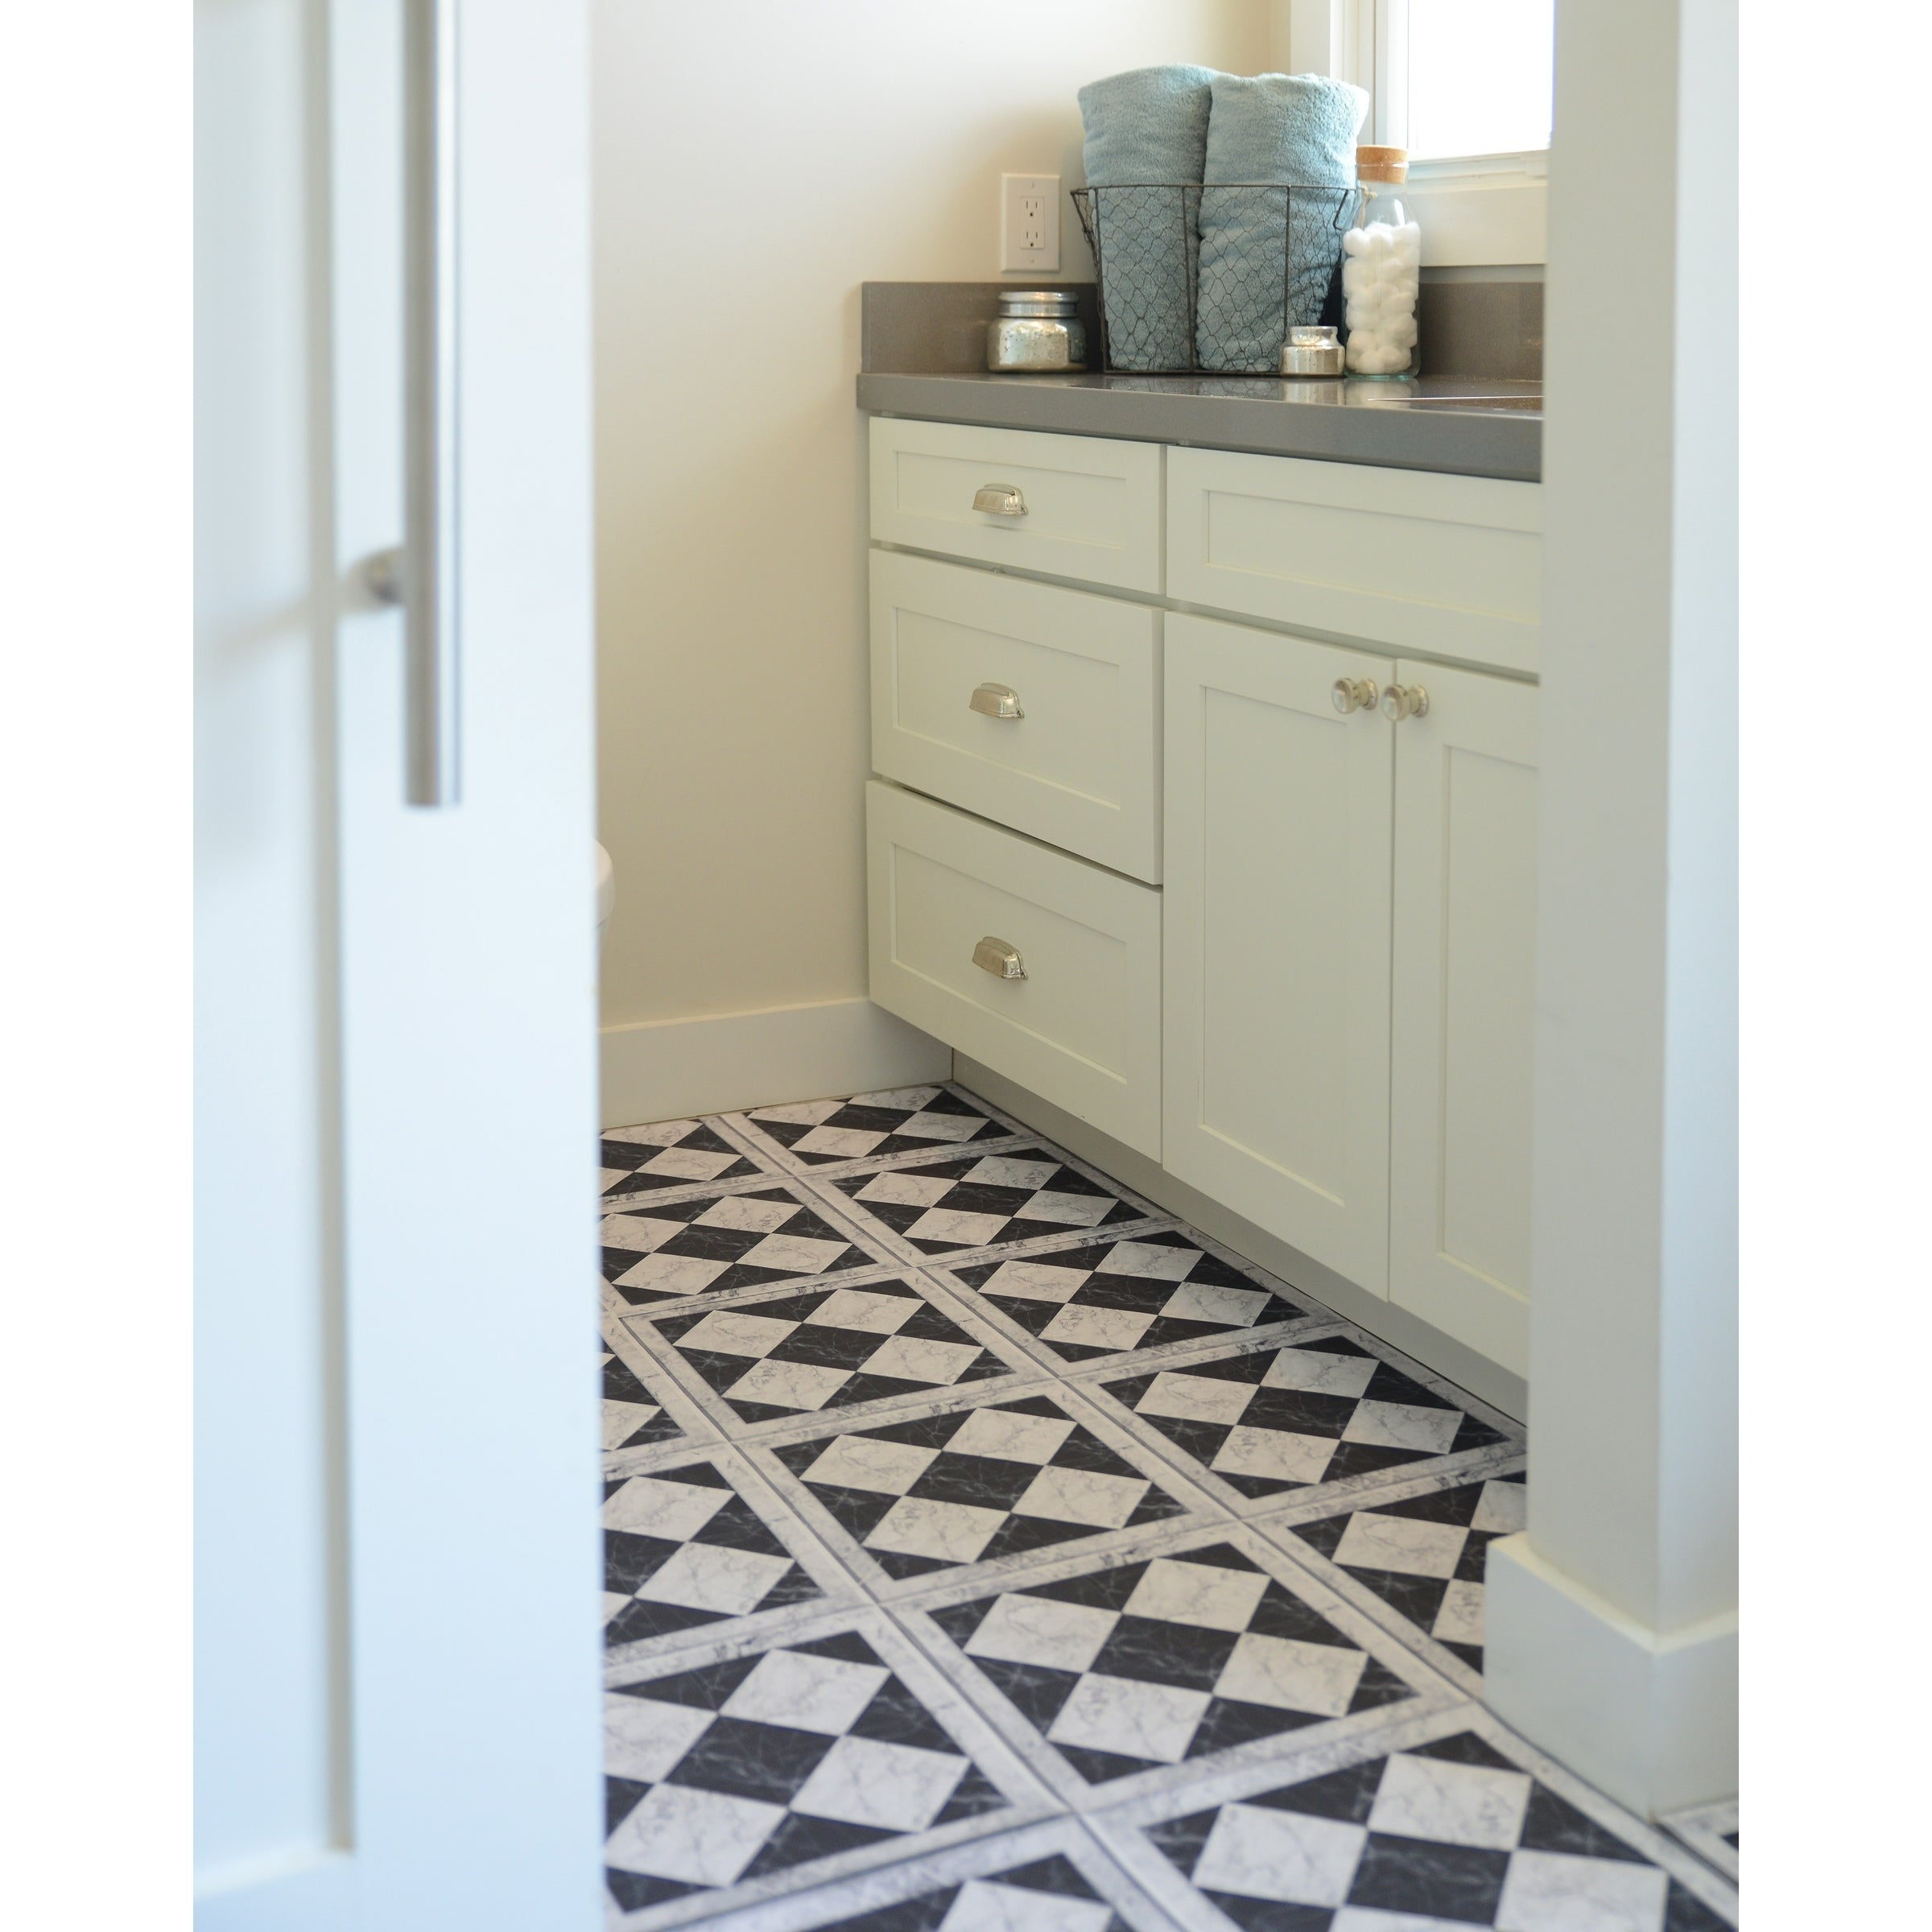 Shop Con Tact Brand Floor Adorn Adhesive Decorative And Removable